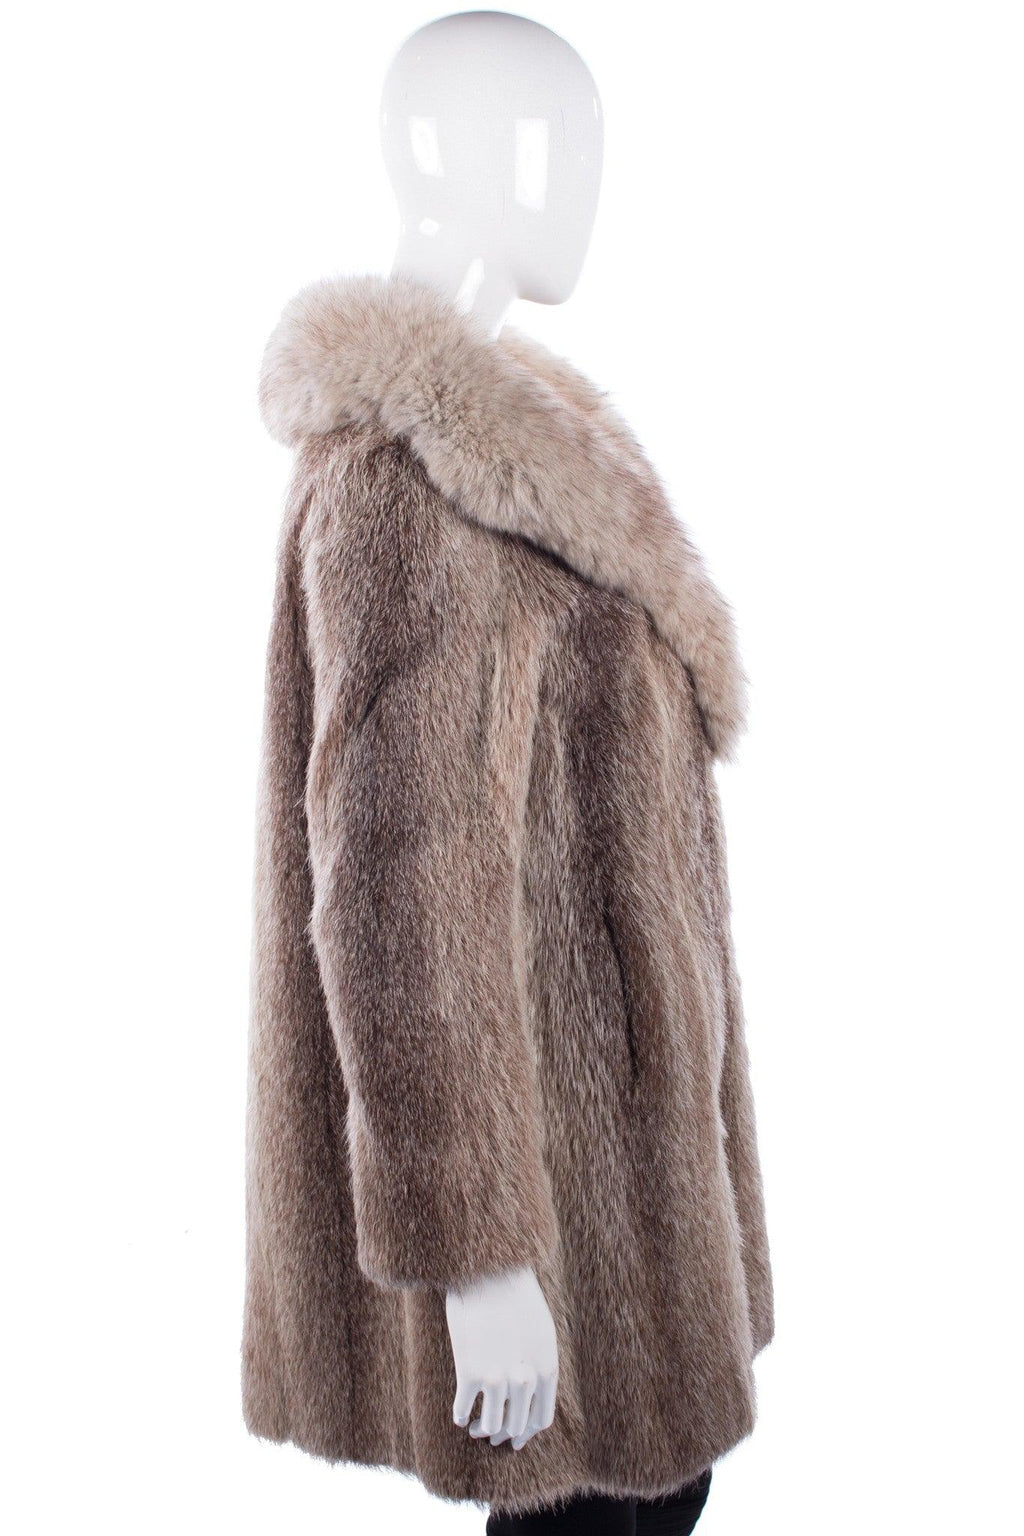 Vintage artic fox fur coat with full collar size M